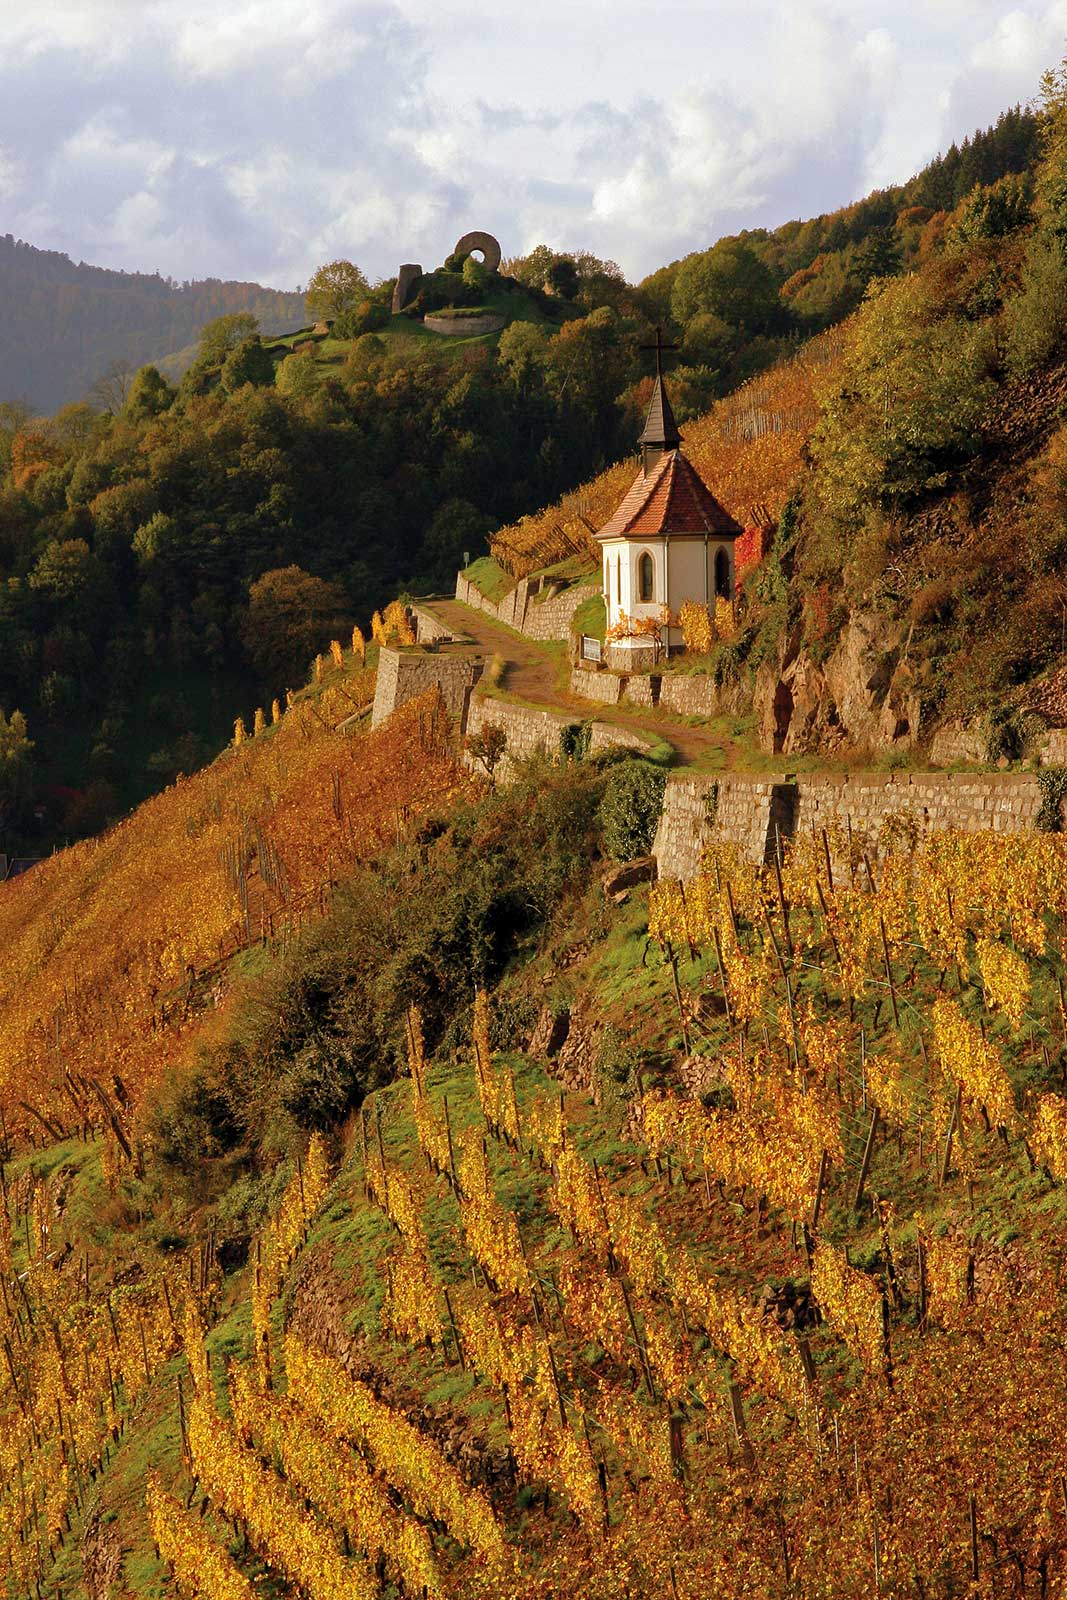 The Clos Saint Urbain within the Grand Cru Rangen de Thann is one of the most prized vineyards in all of France, and Domaine Zind-Humbrecht owns all of it. ©Domaine Zind-Humbrecht